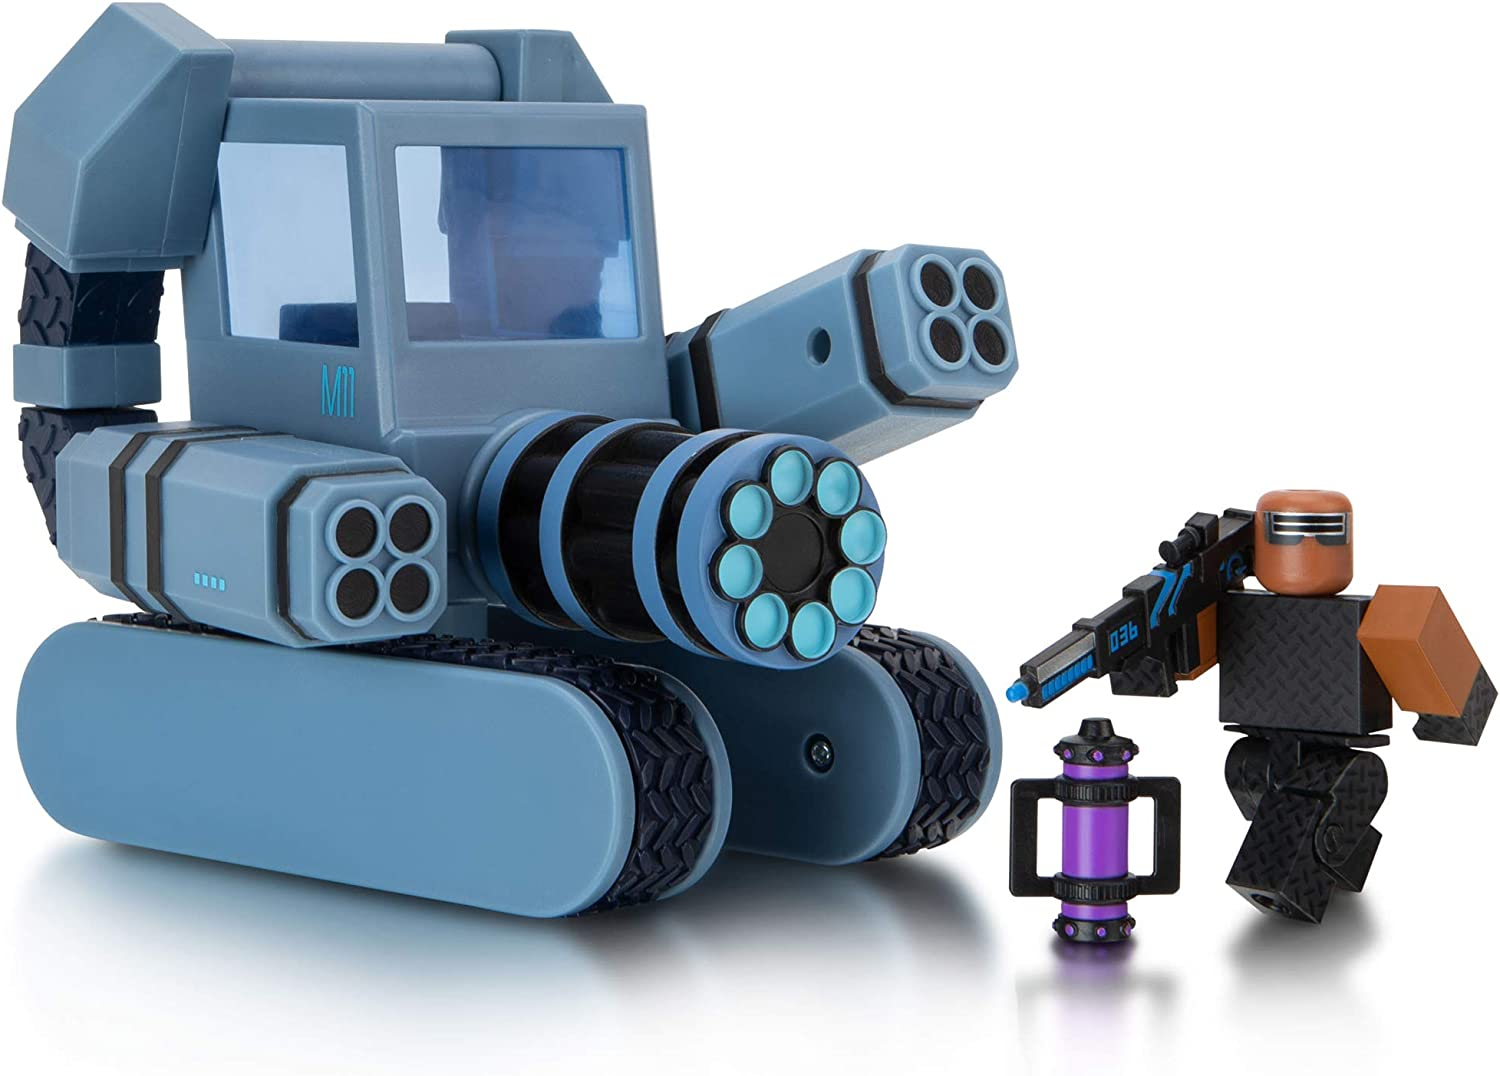 Roblox Action Collection - Tower Battles: ZED Vehicle [Includes Exclusive Virtual Item]